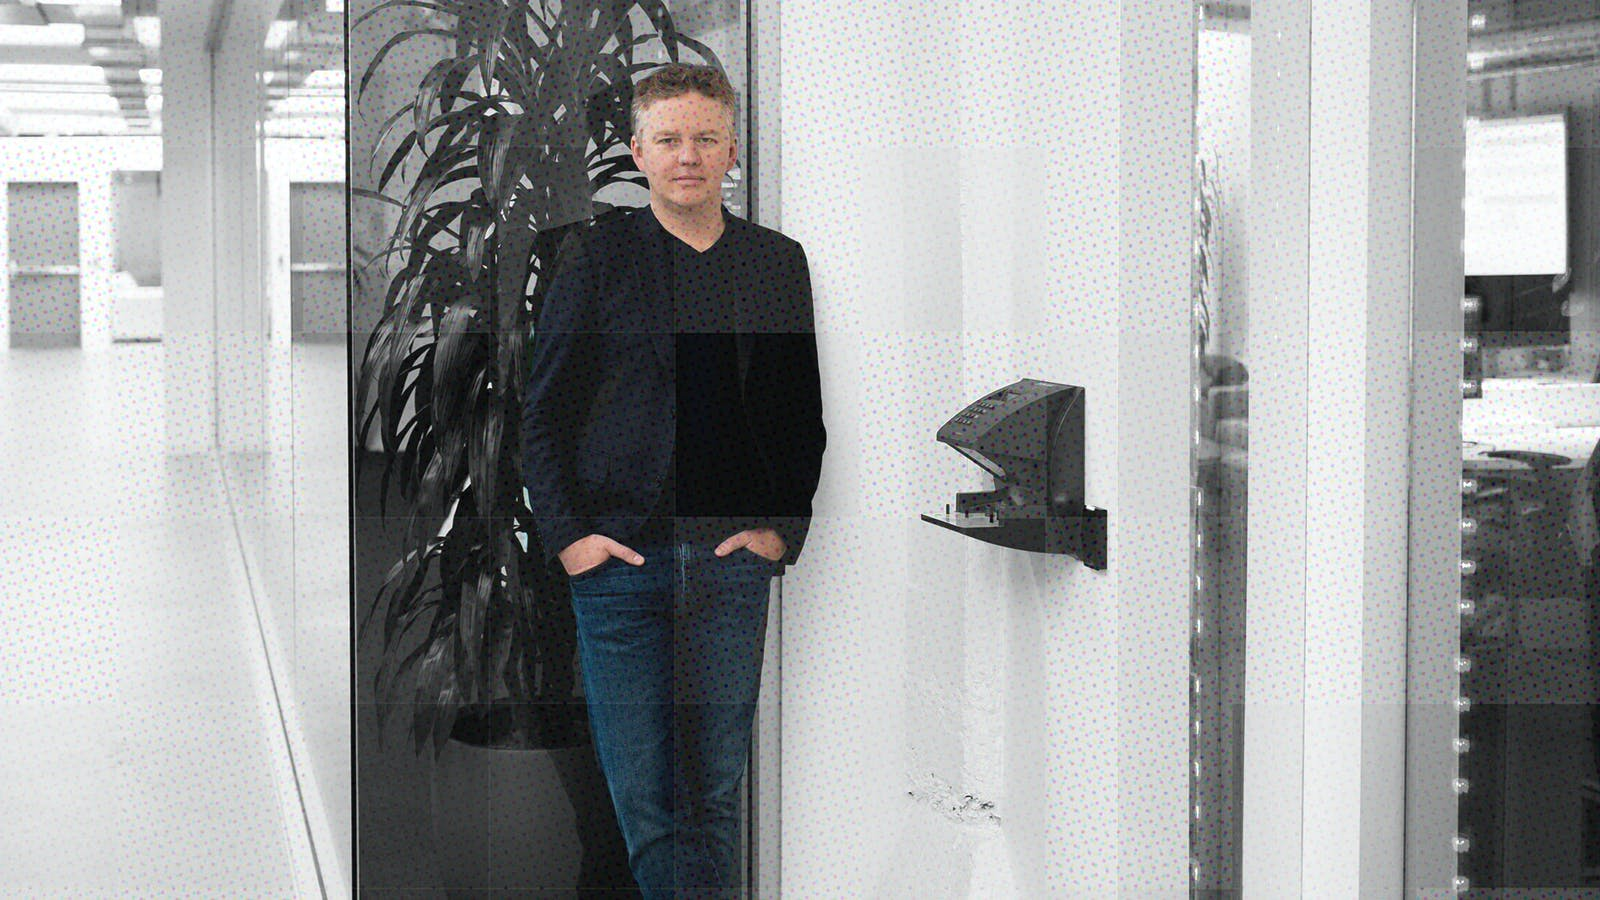 Cloudfare CEO Matthew Prince. Photo by Cloudflare